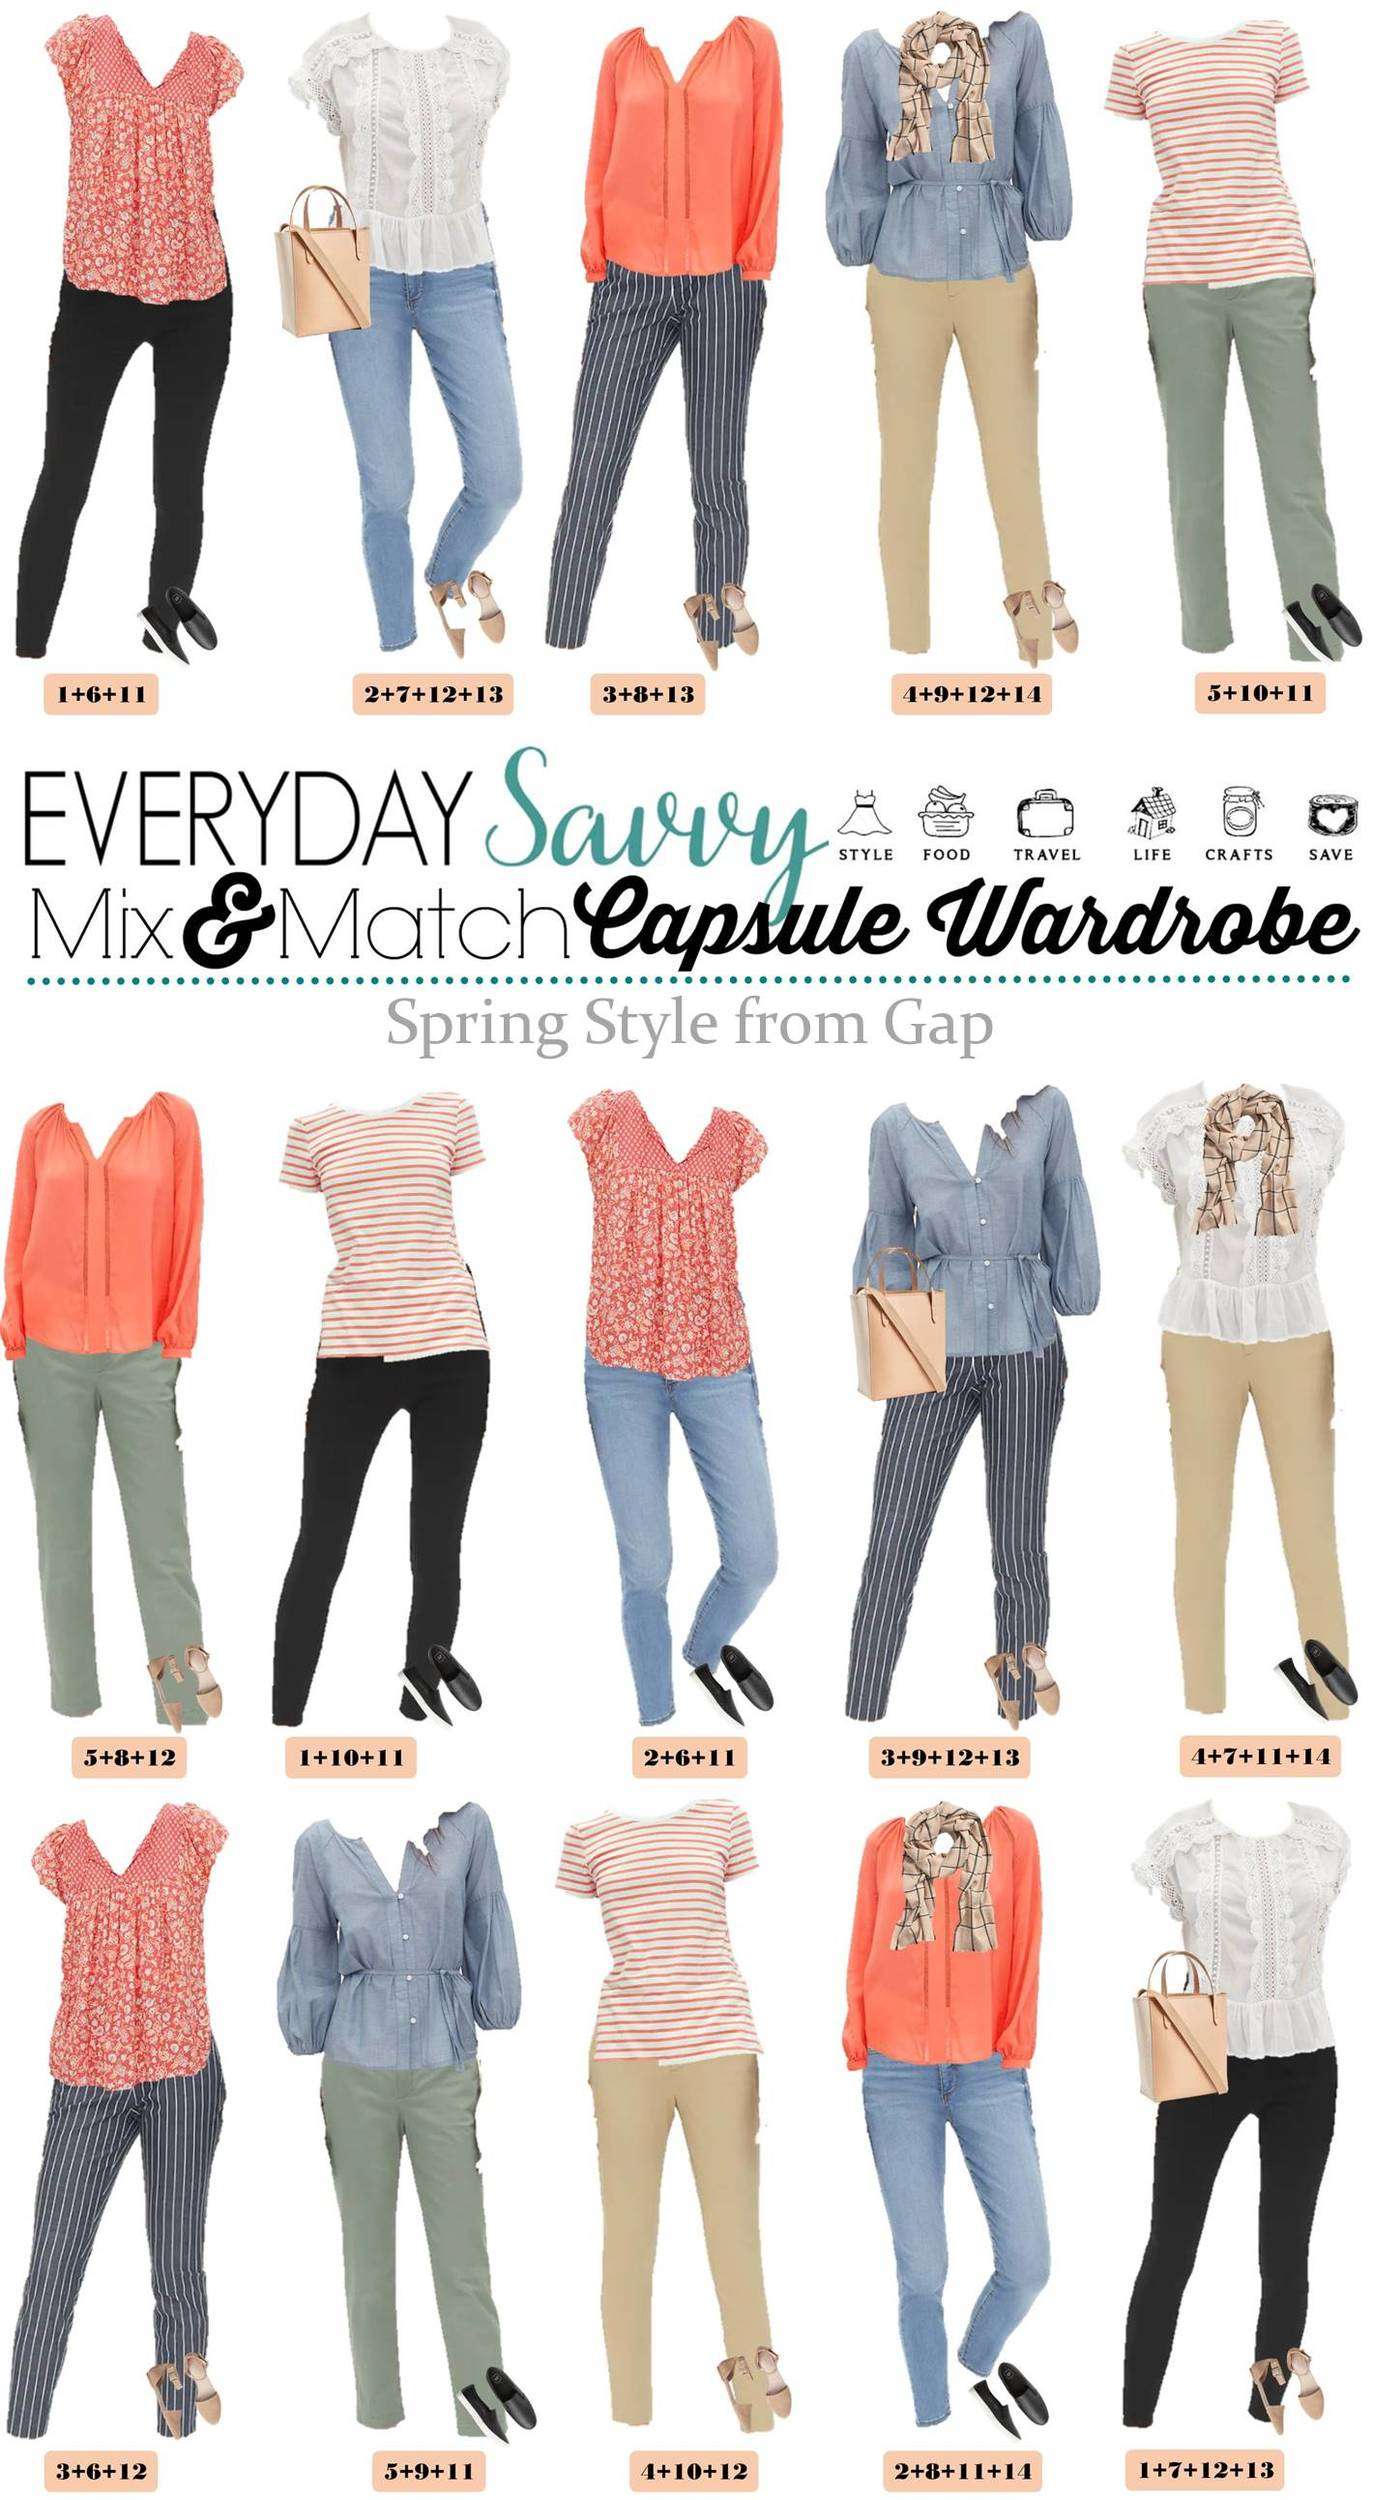 cute sprig outfits - floral tops, striped pants and more